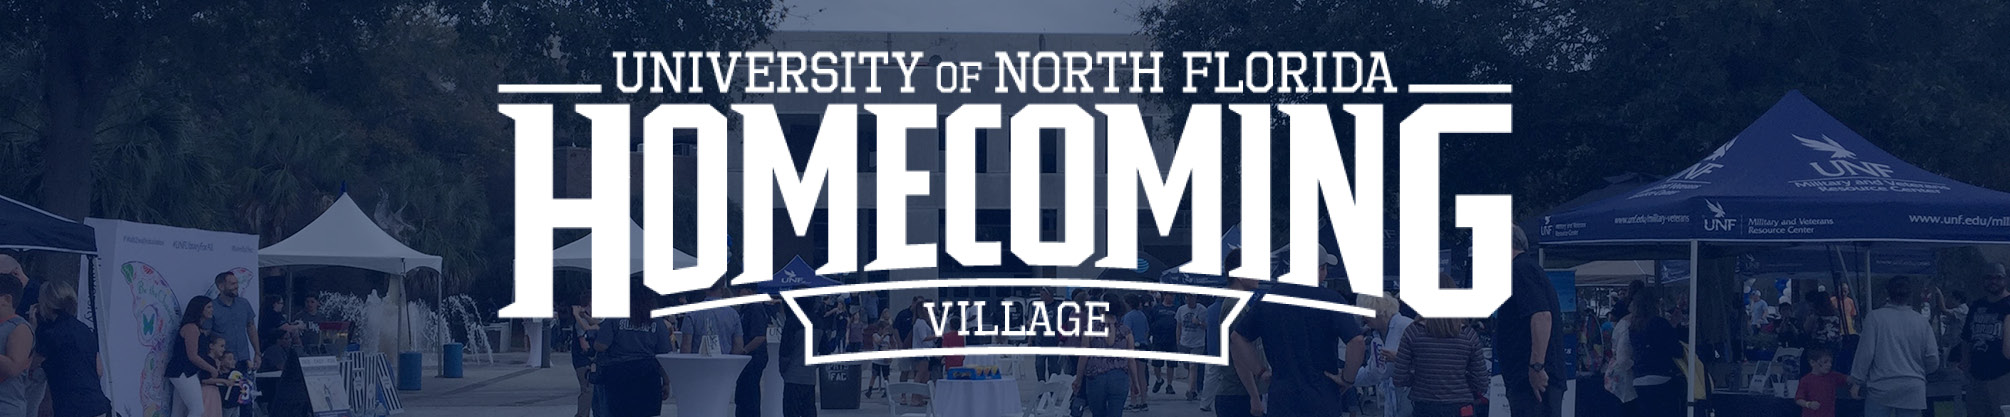 Homecoming Village 2020 Banner